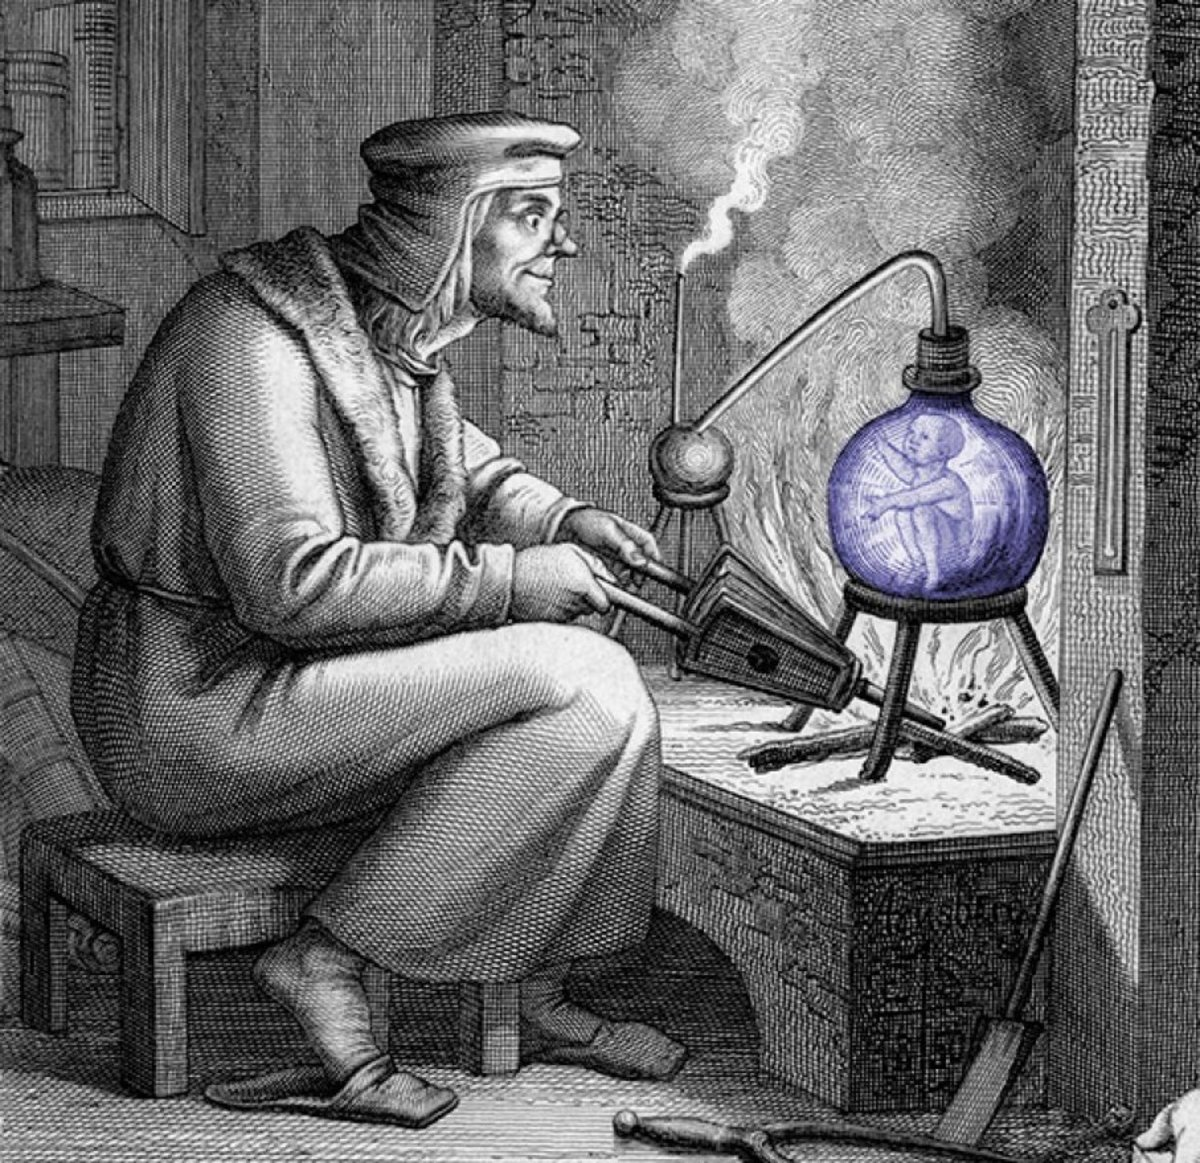 The Homunculus: Creation Through Alchemy